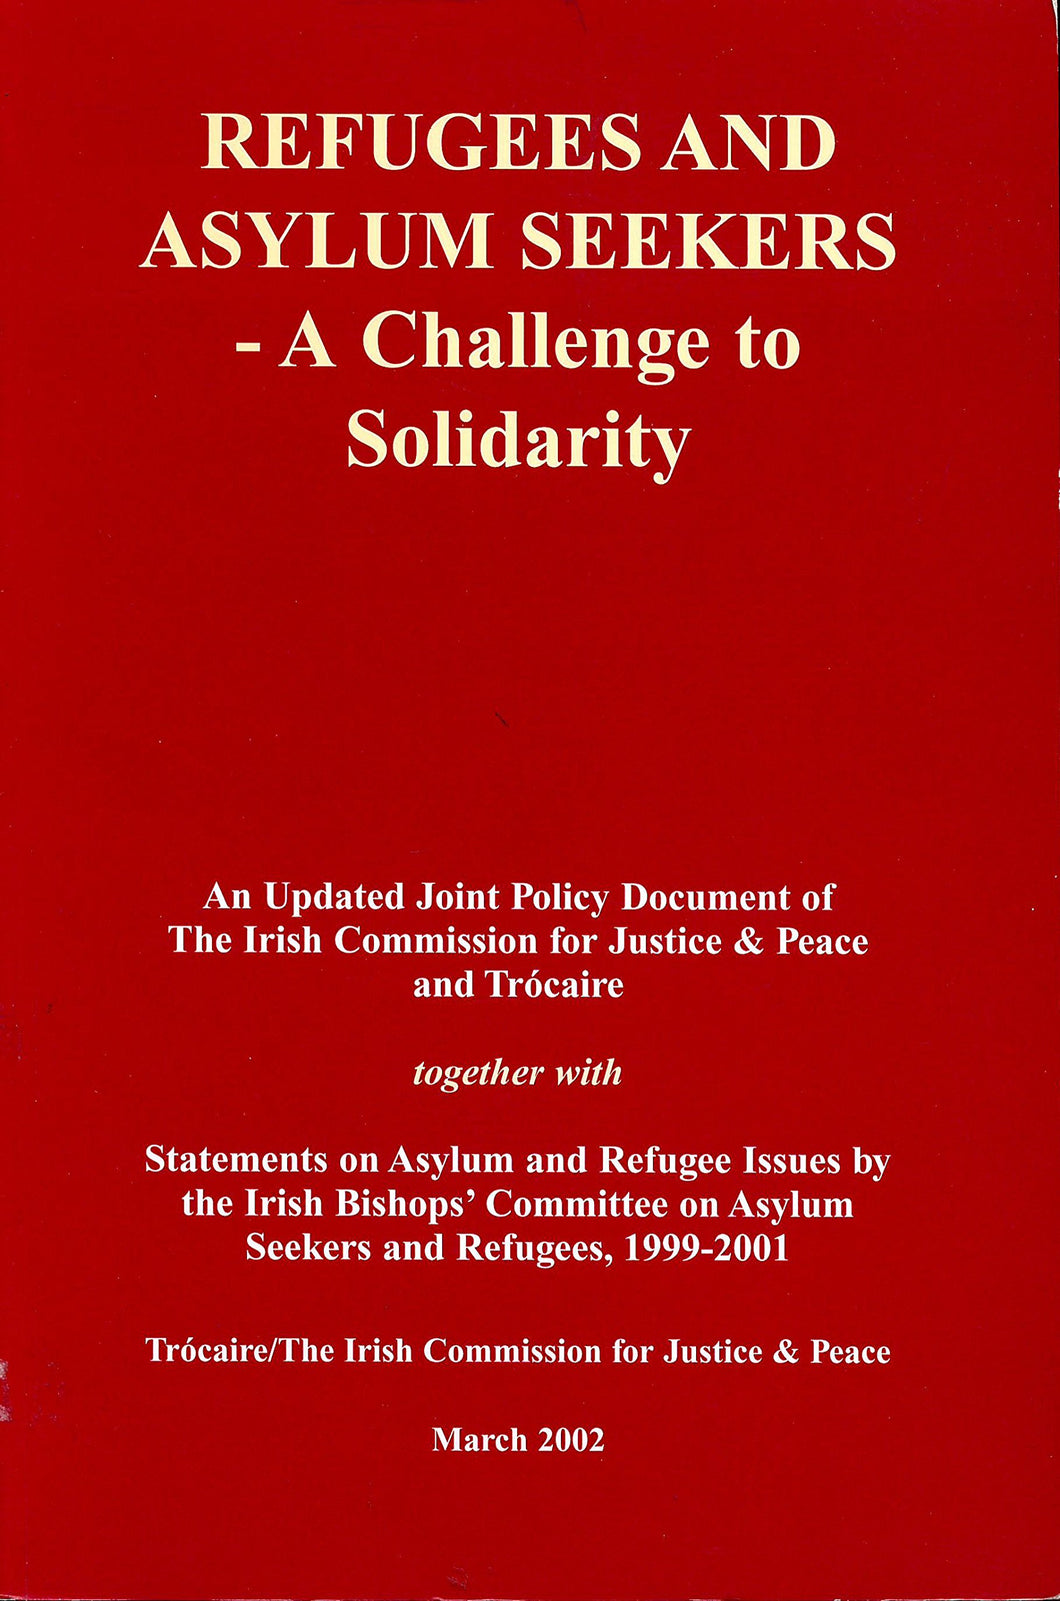 Refugees and Asylum Seekers - A Challenge to Solidarity: An Updated Joint Policy Document of the Irish Commission for Justice & Peace and Trócaire